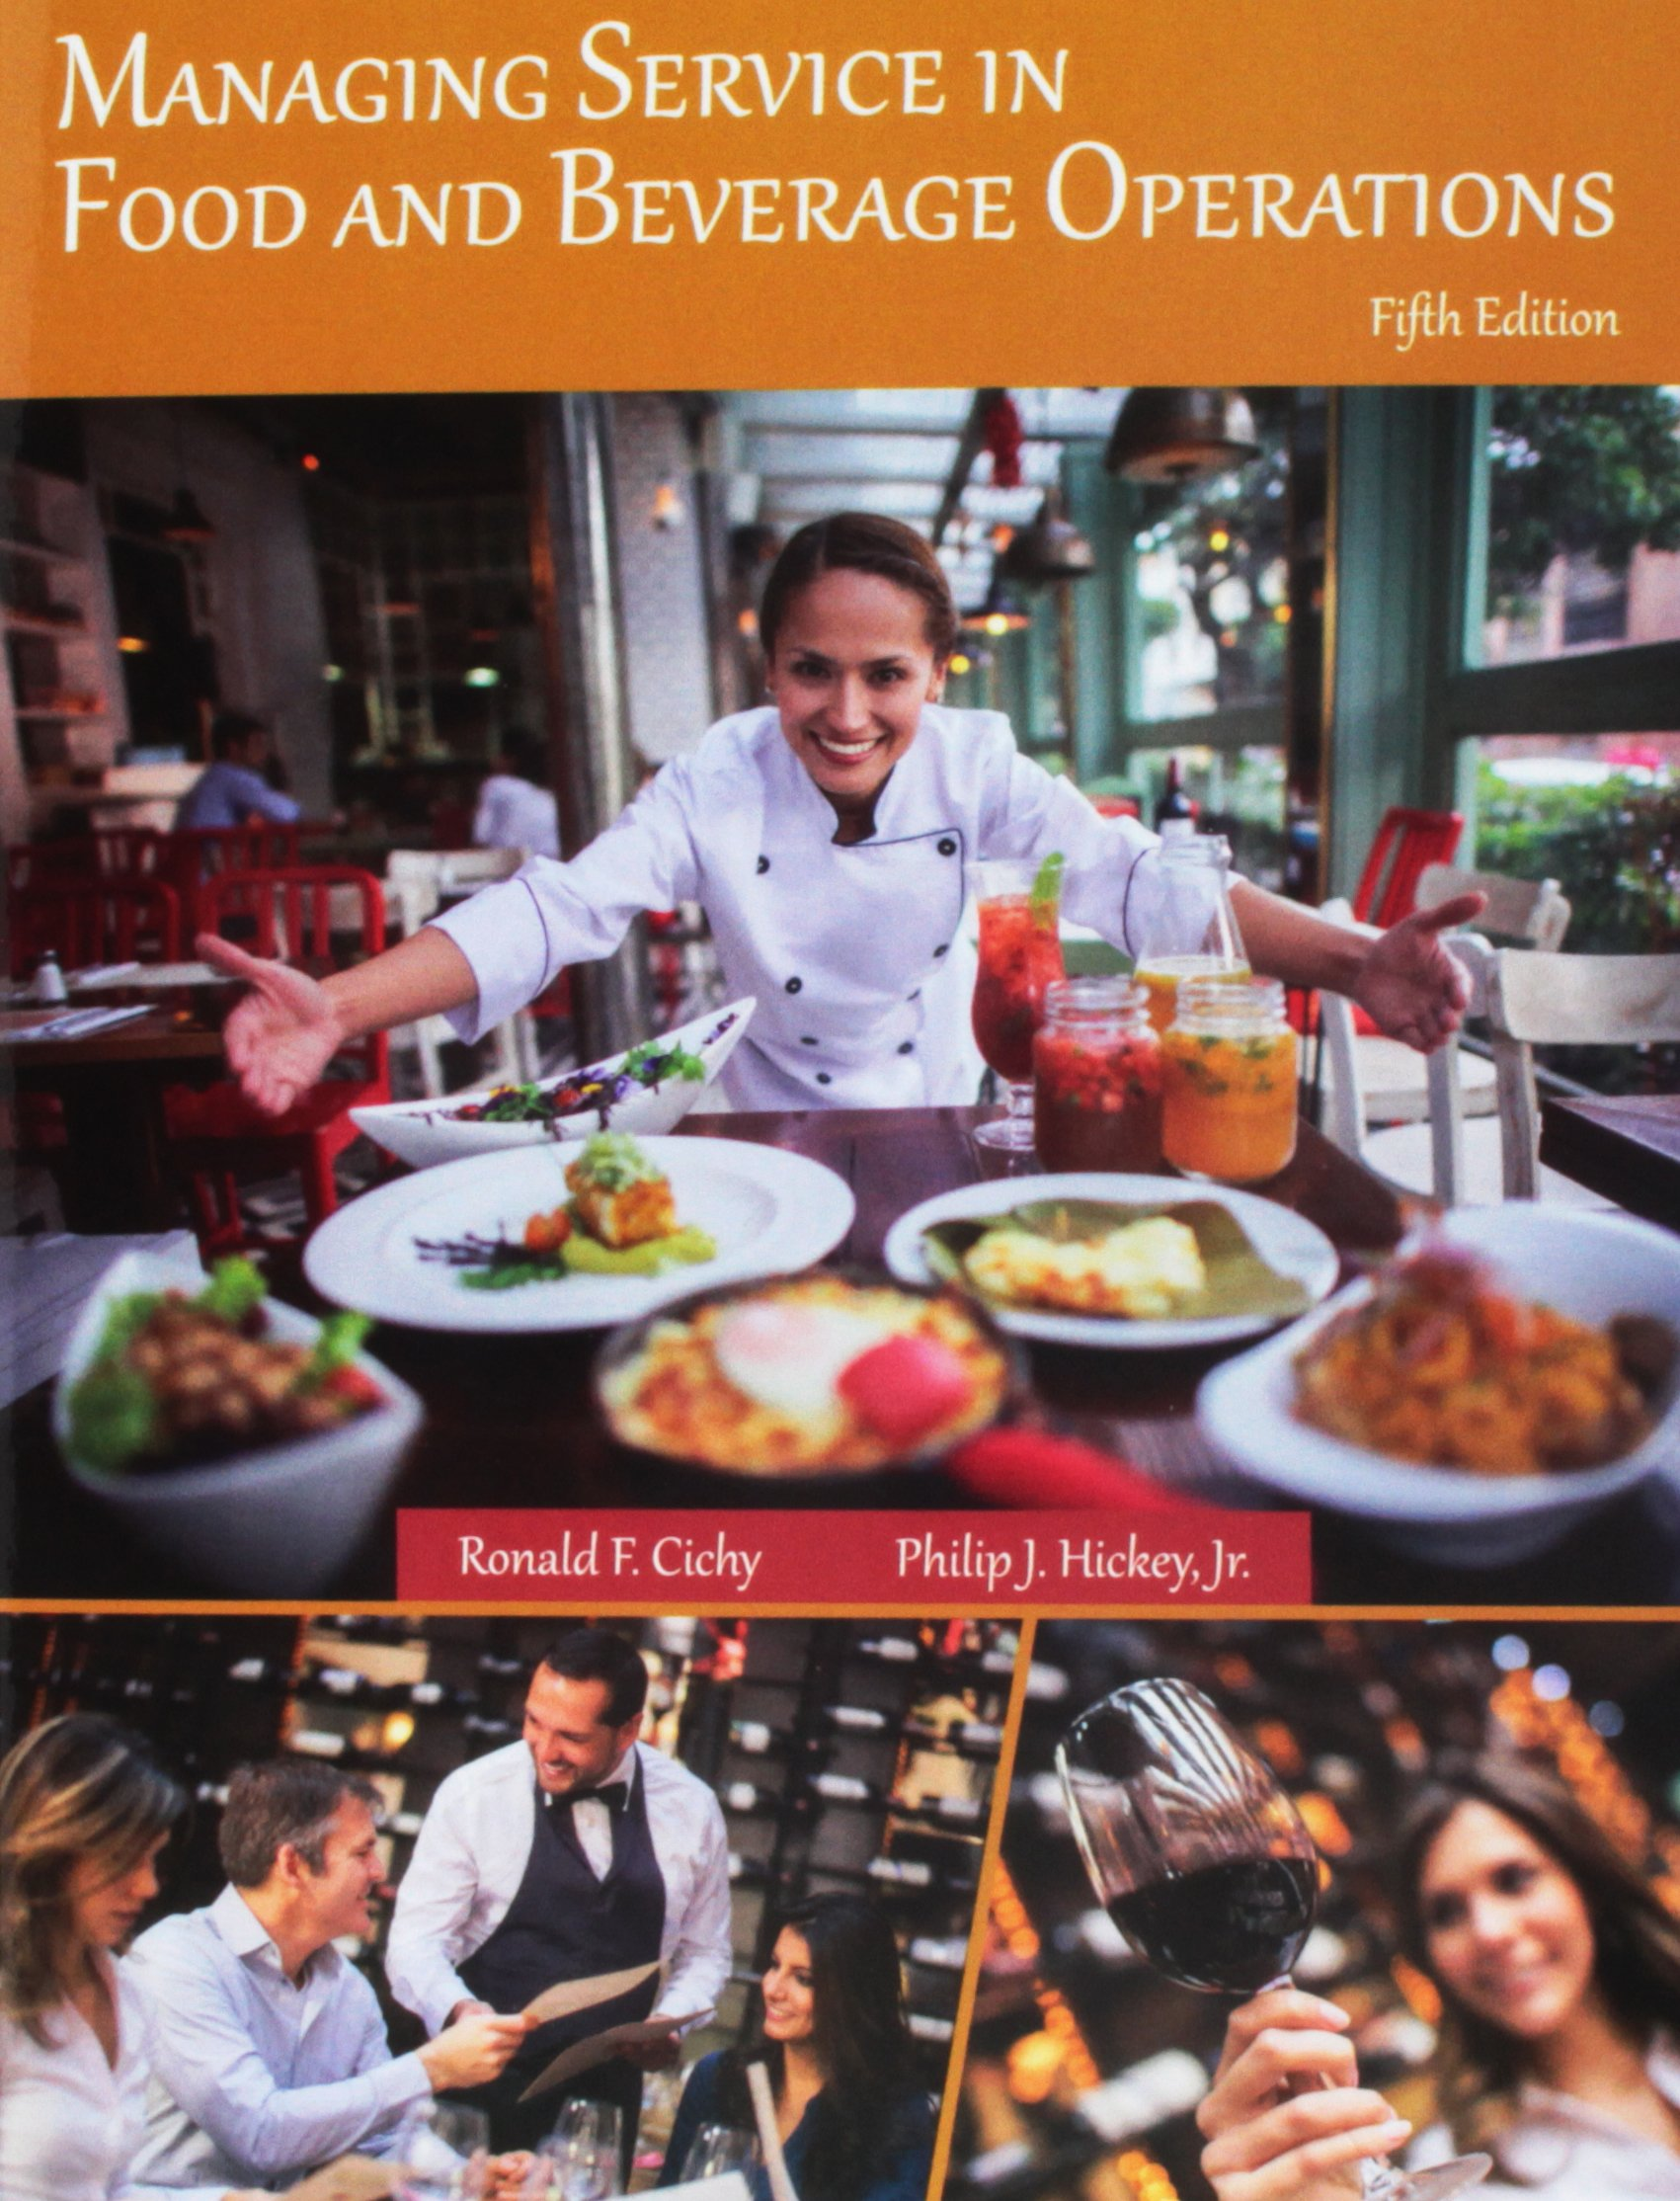 Managing Service In Food and Beverage Operation: Amazon.co.uk: Ronald F.  Cinchy, Ph.D., CHA Emeritus, Philip J. Hickey Jr.: 9780866125109: Books